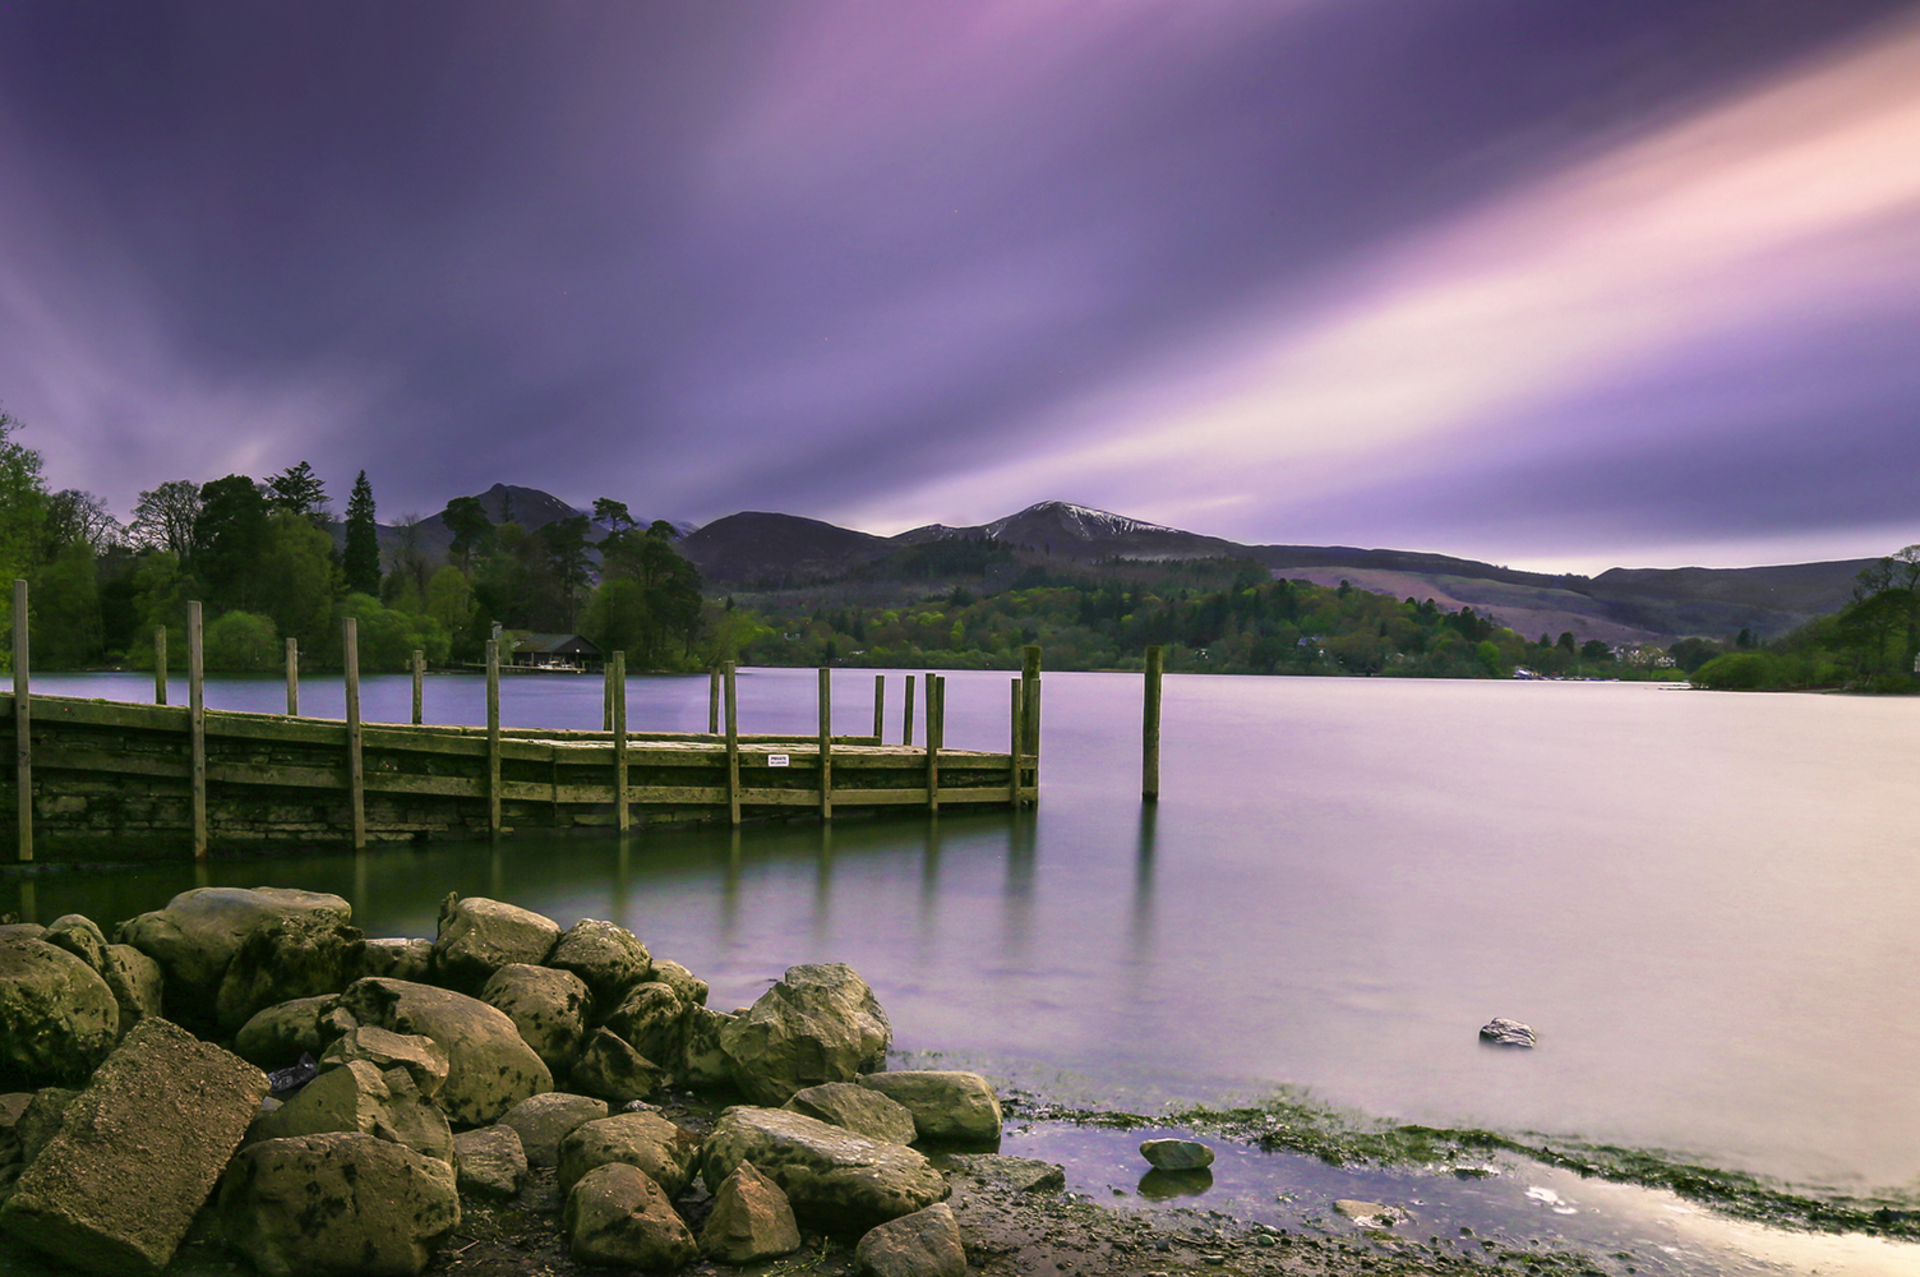 Looking out over Derwent Water. England's Lake District on a very cool evening